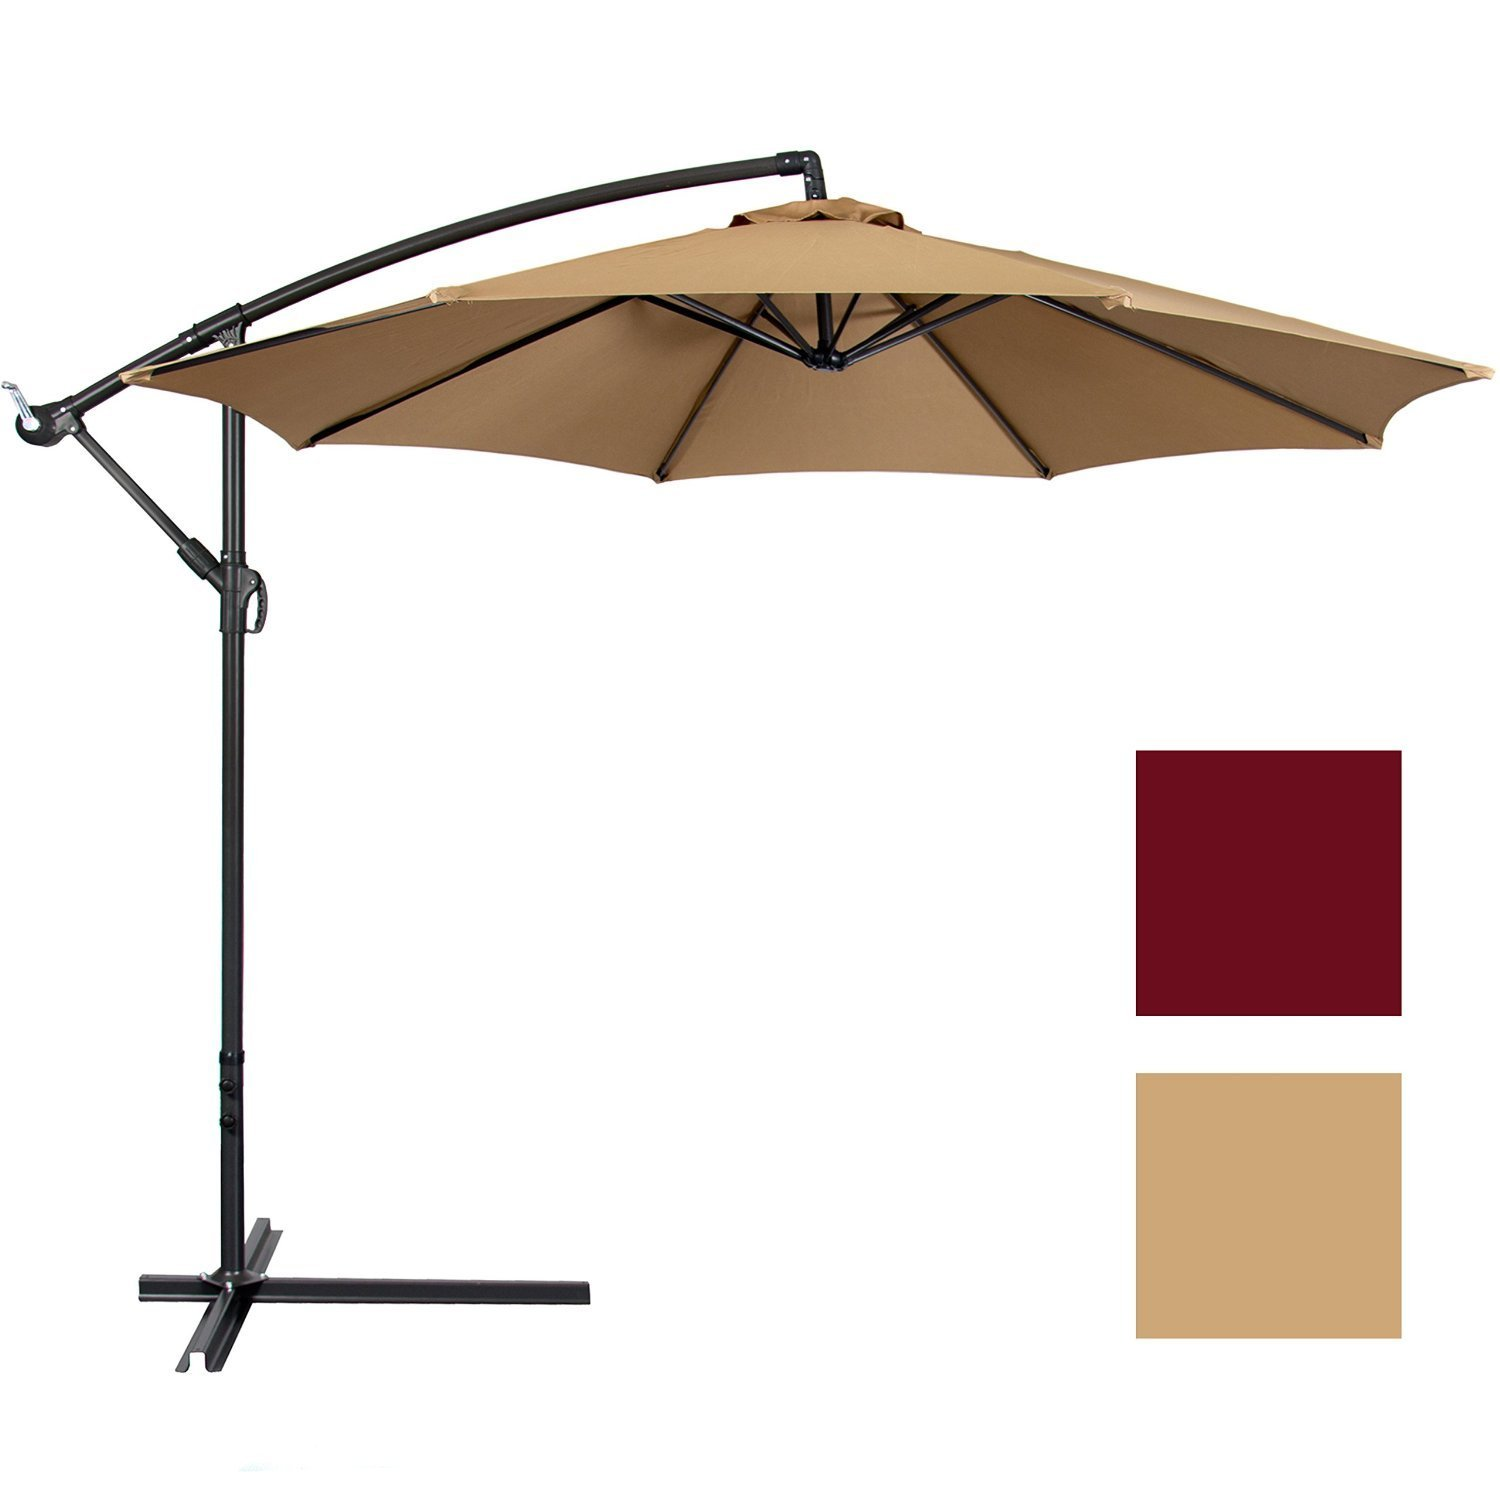 Glendale New Amt Patio Umbrella Auction Auction Nation